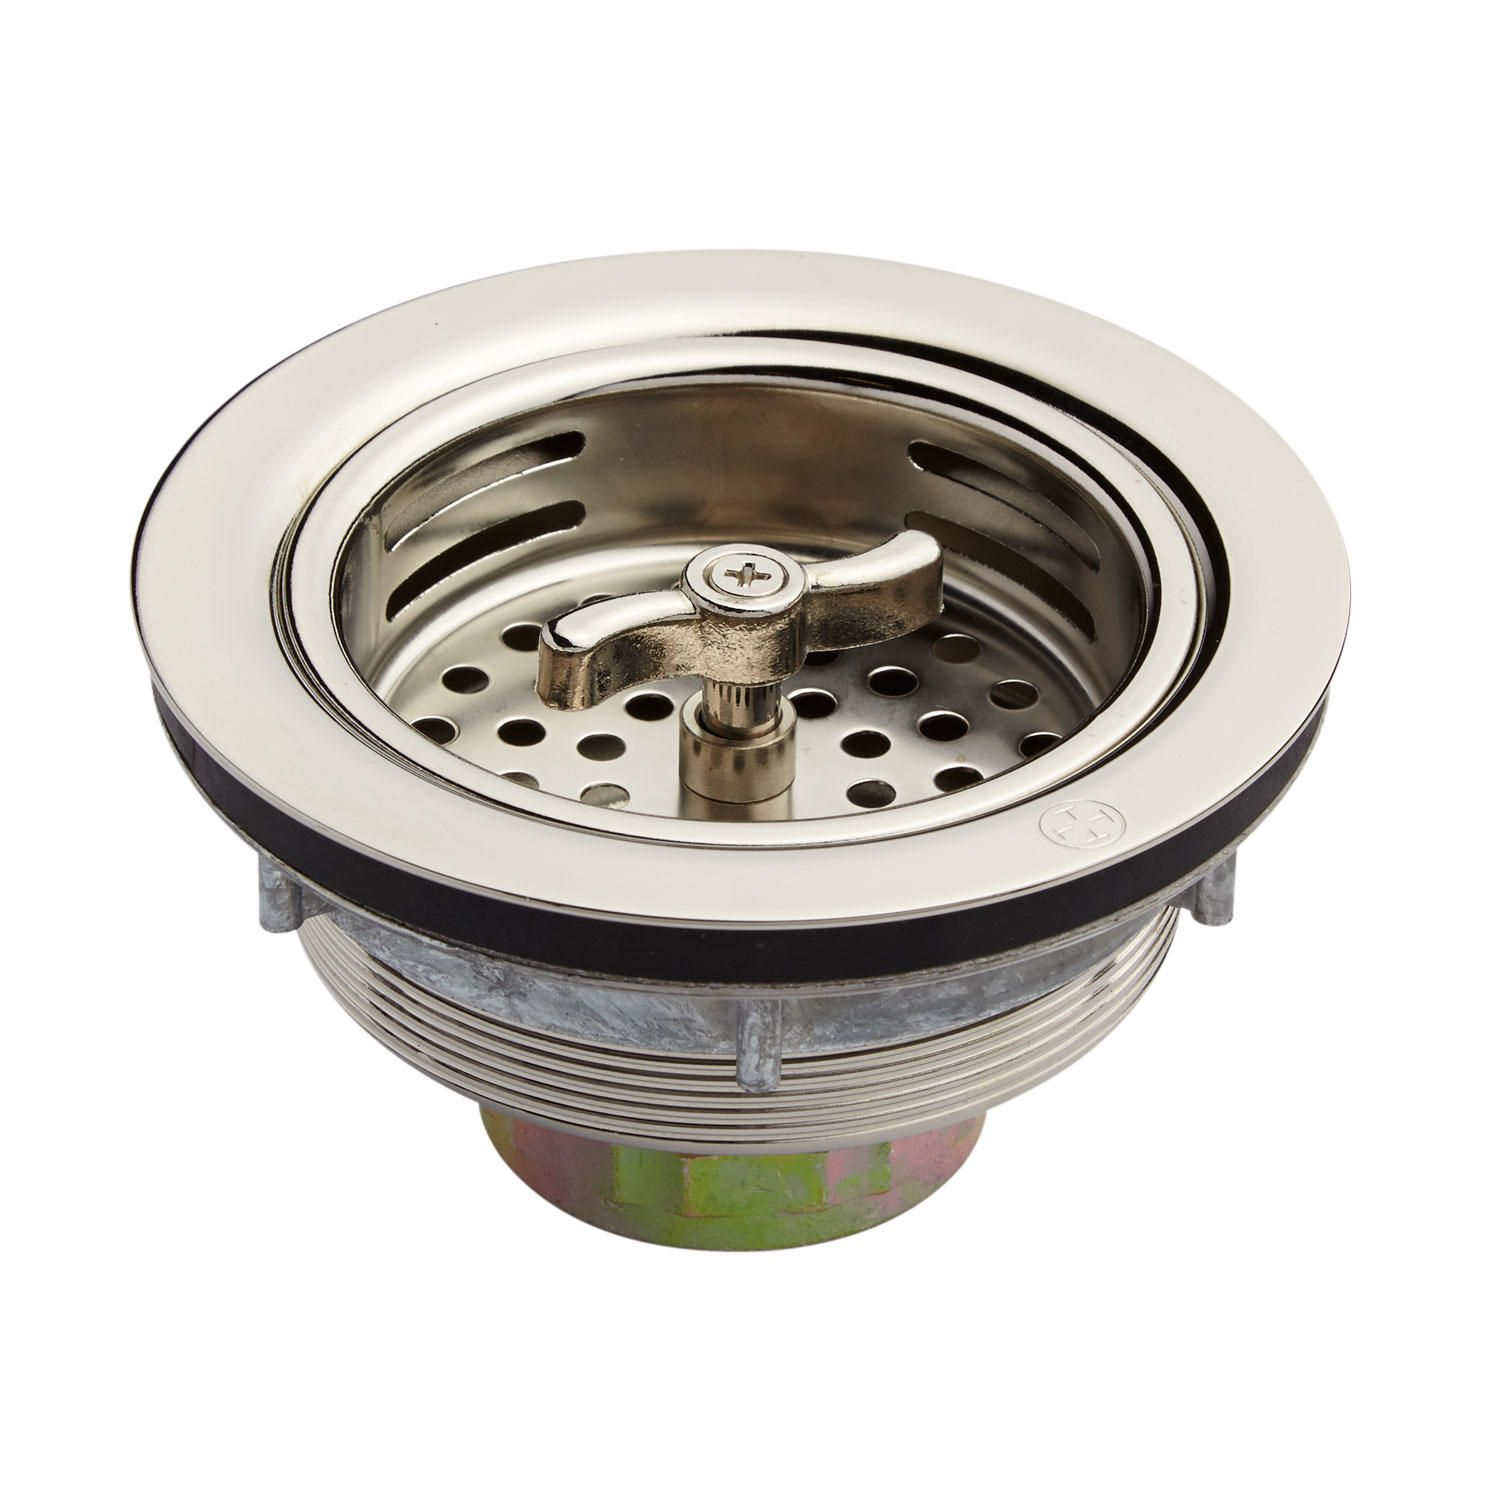 Strainer Basket with Wing Nut Stopper 3 12